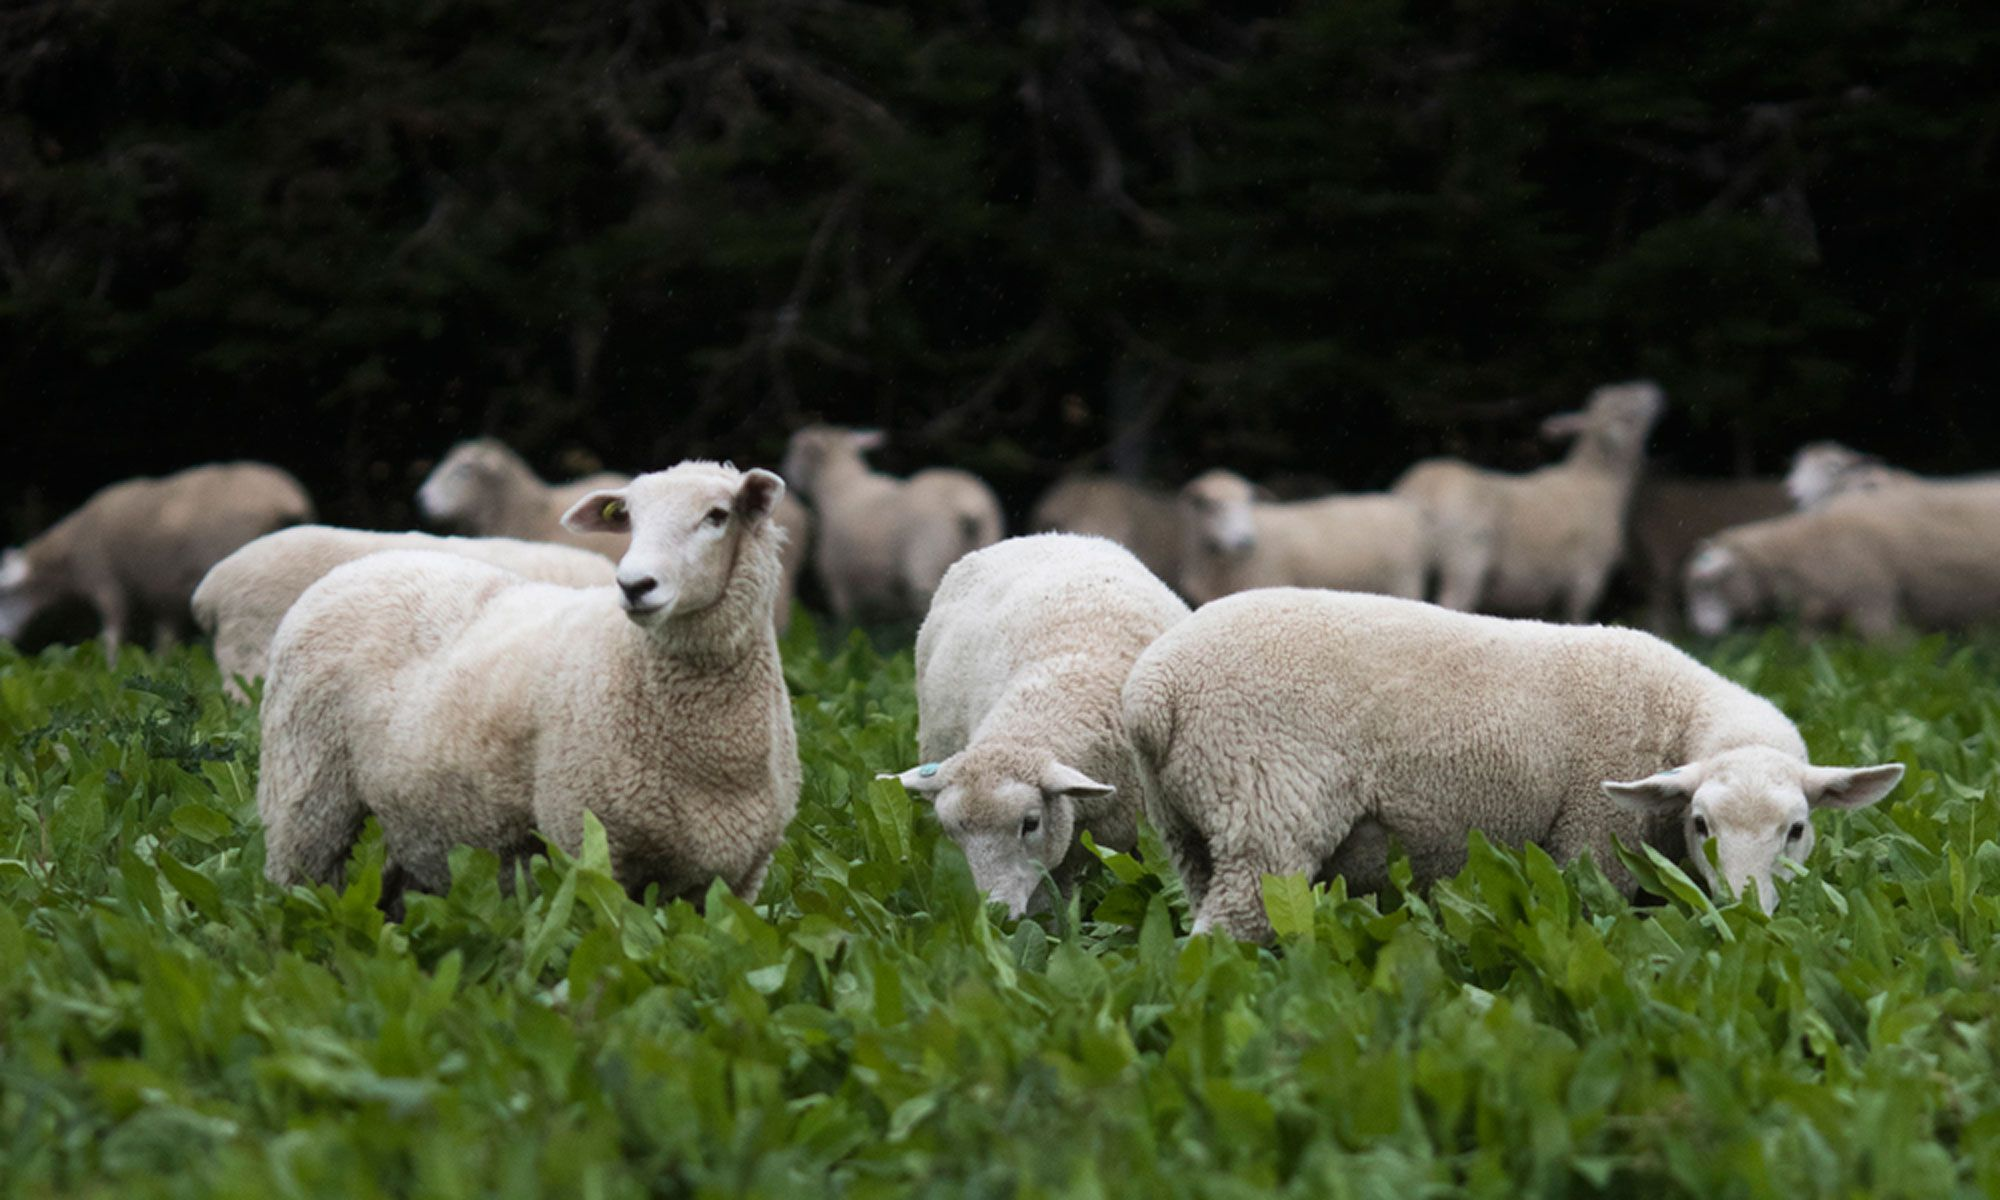 Te Mana Farm In New Zealand Ethically Raises New Breeds Of Sheep